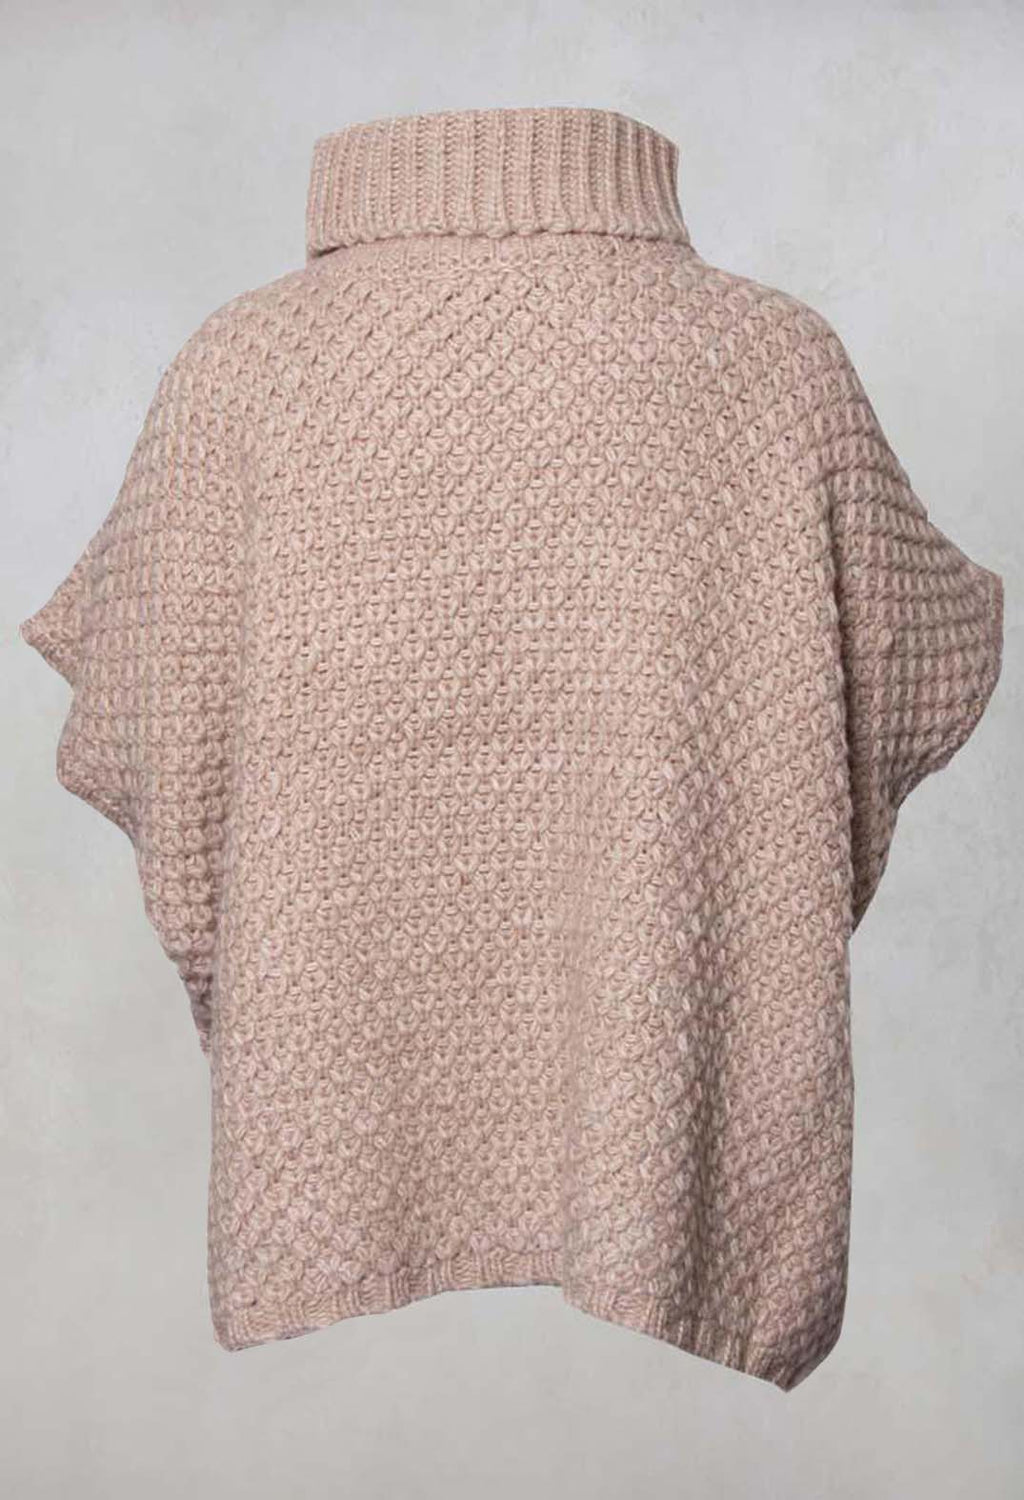 Irisou Knitted Roll Neck Poncho in Beige Rose